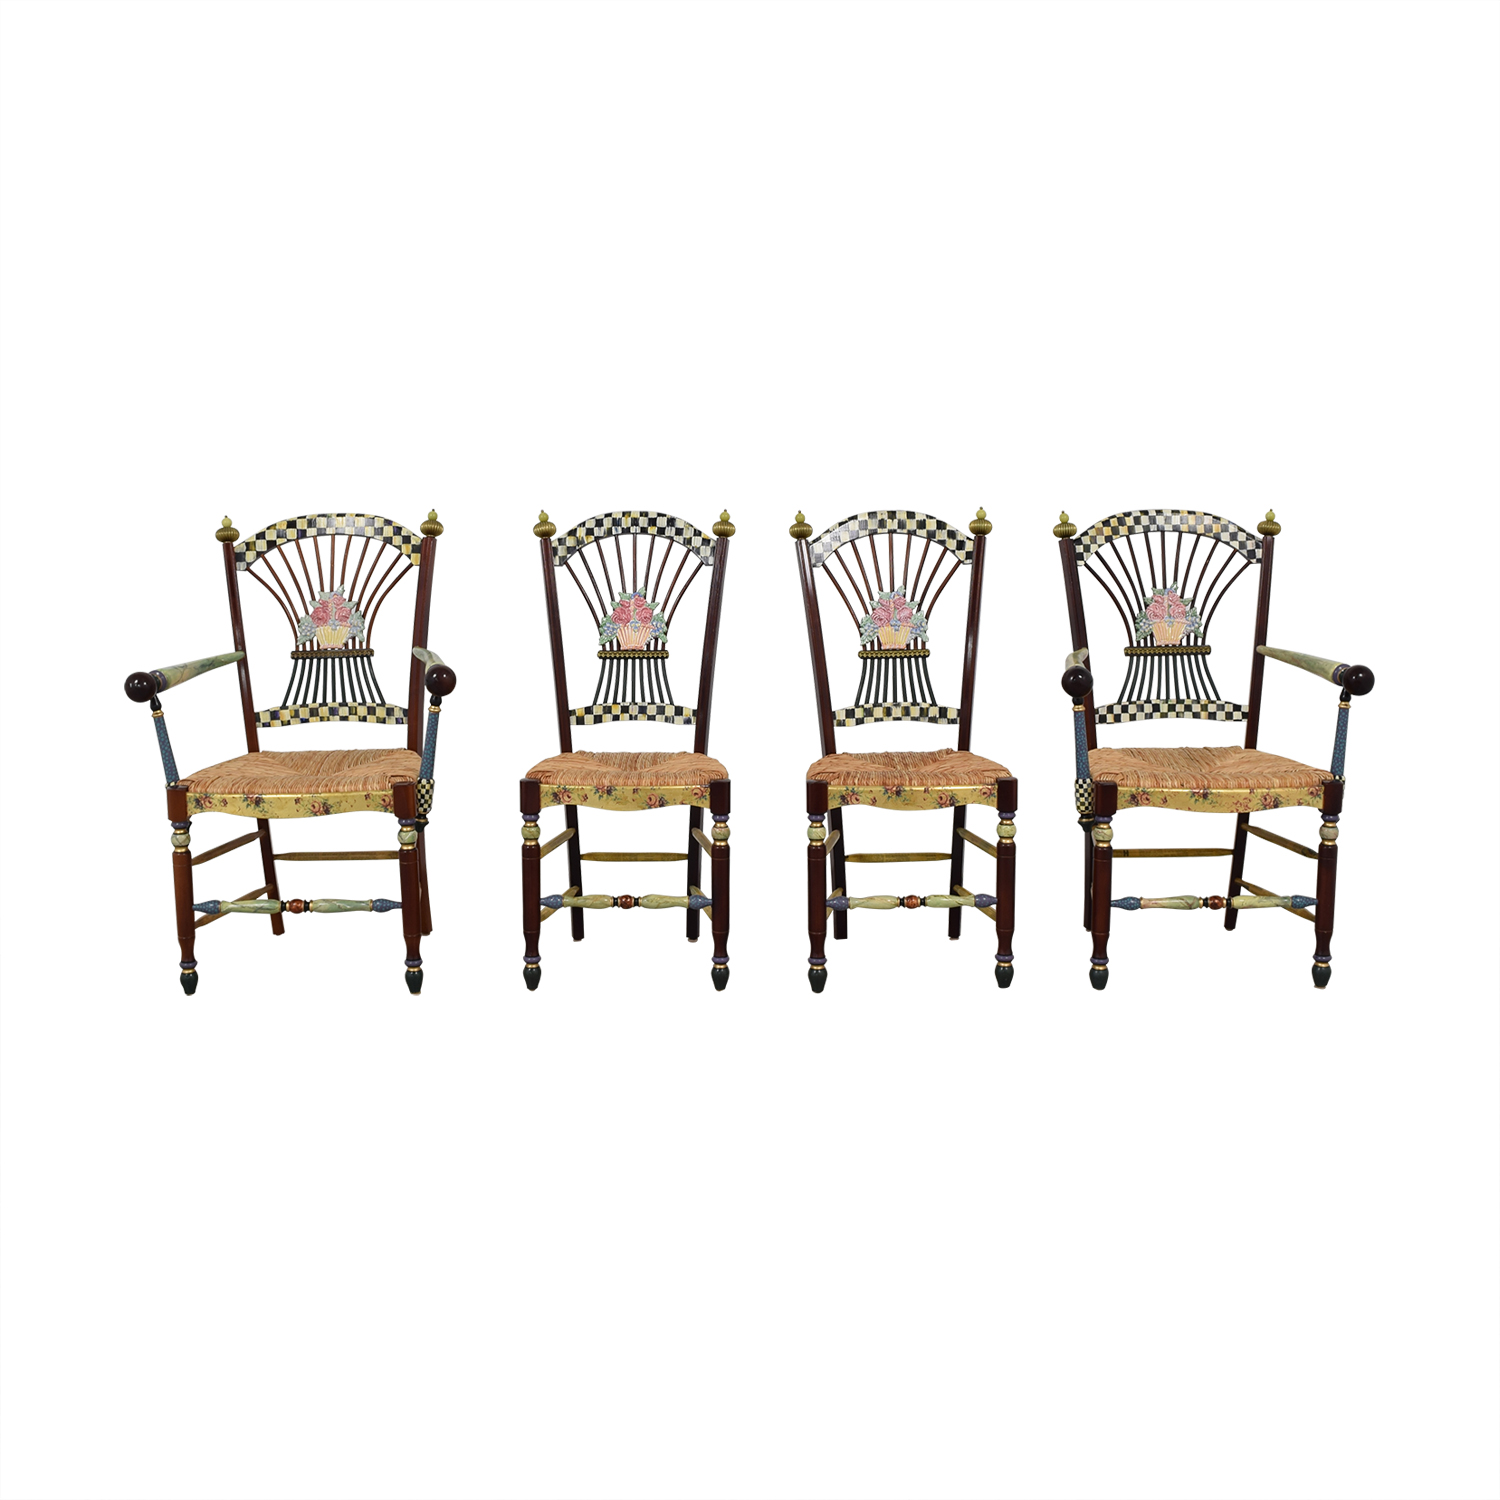 Awe Inspiring 83 Off Mackenzie Childs Mackenzie Childs Multi Colored Wicker Dining Chairs Chairs Beatyapartments Chair Design Images Beatyapartmentscom